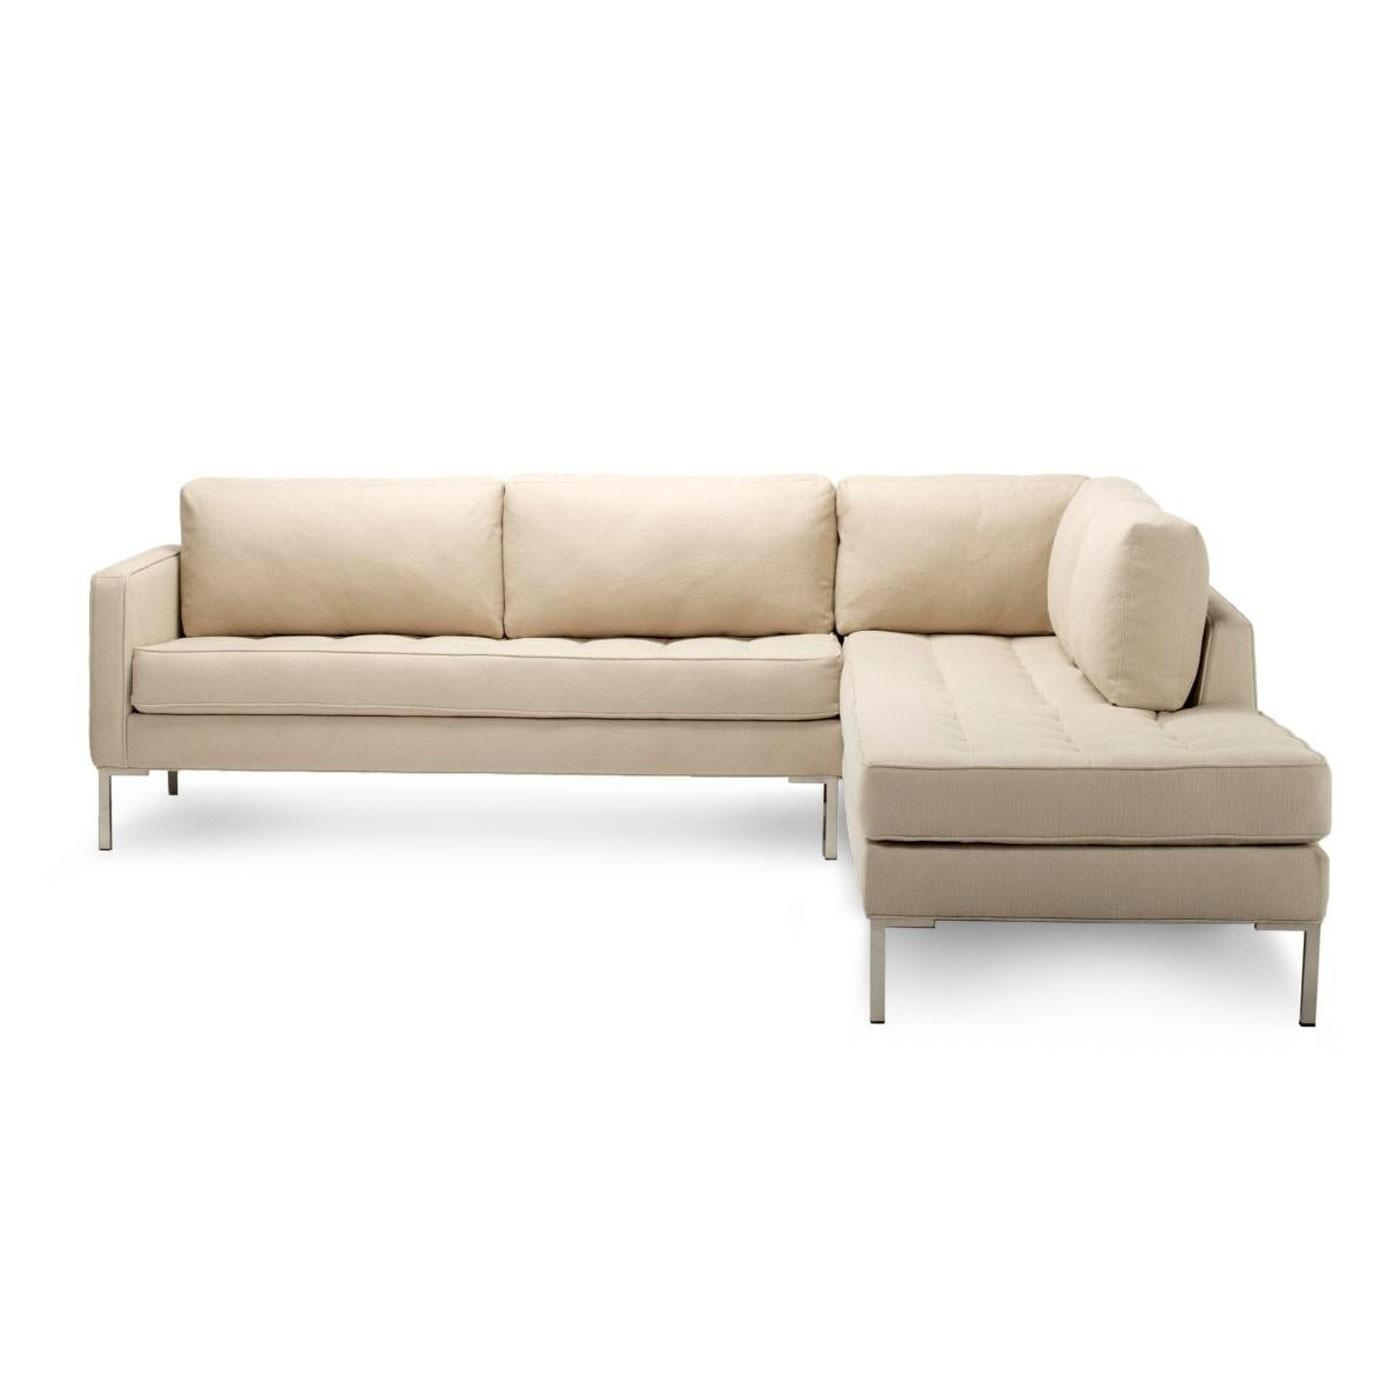 Cheap L Shaped Sofa (Image 5 of 15)